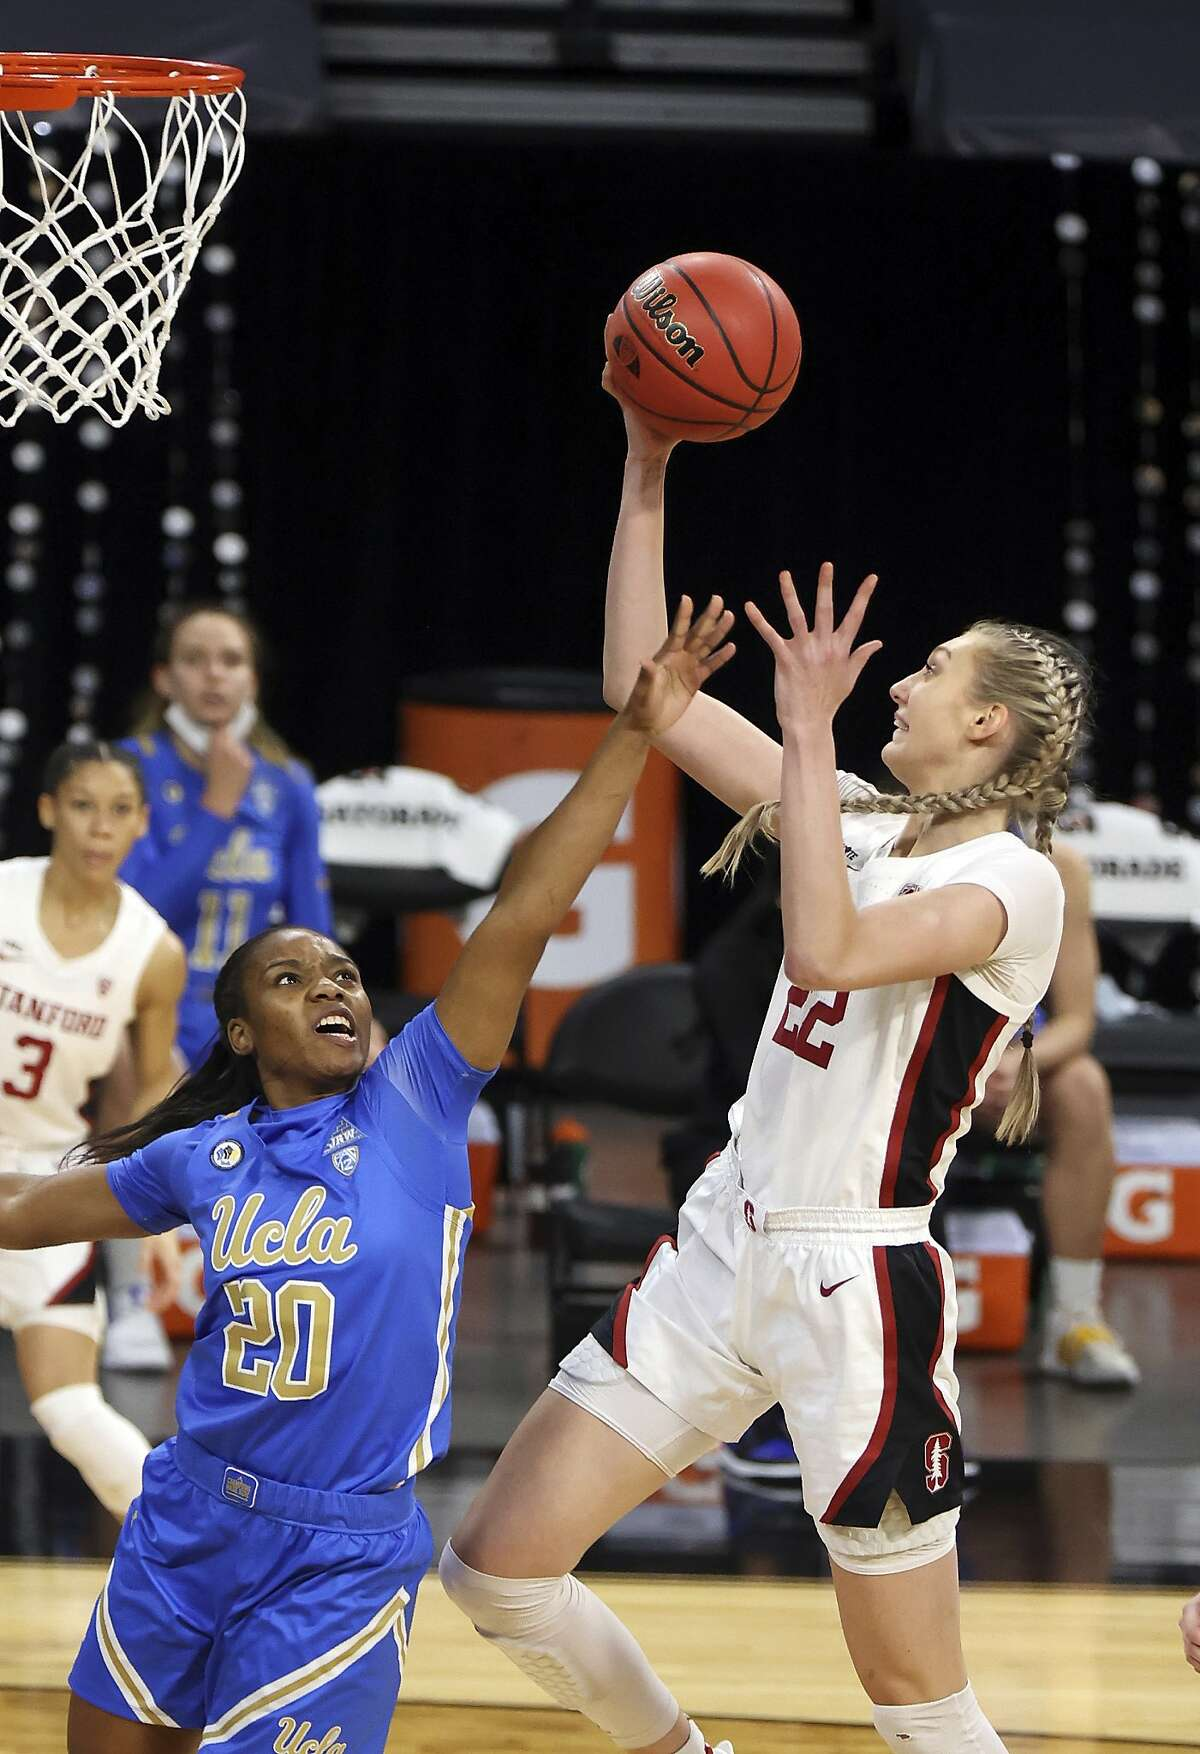 Stanford forward Cameron Brink (22) shoots as UCLA guard Charisma Osborne (20) defends during the first half of an NCAA college basketball game in the Pac-12 women's tournament championship Sunday, March 7, 2021, in Las Vegas. (AP Photo/Isaac Brekken)